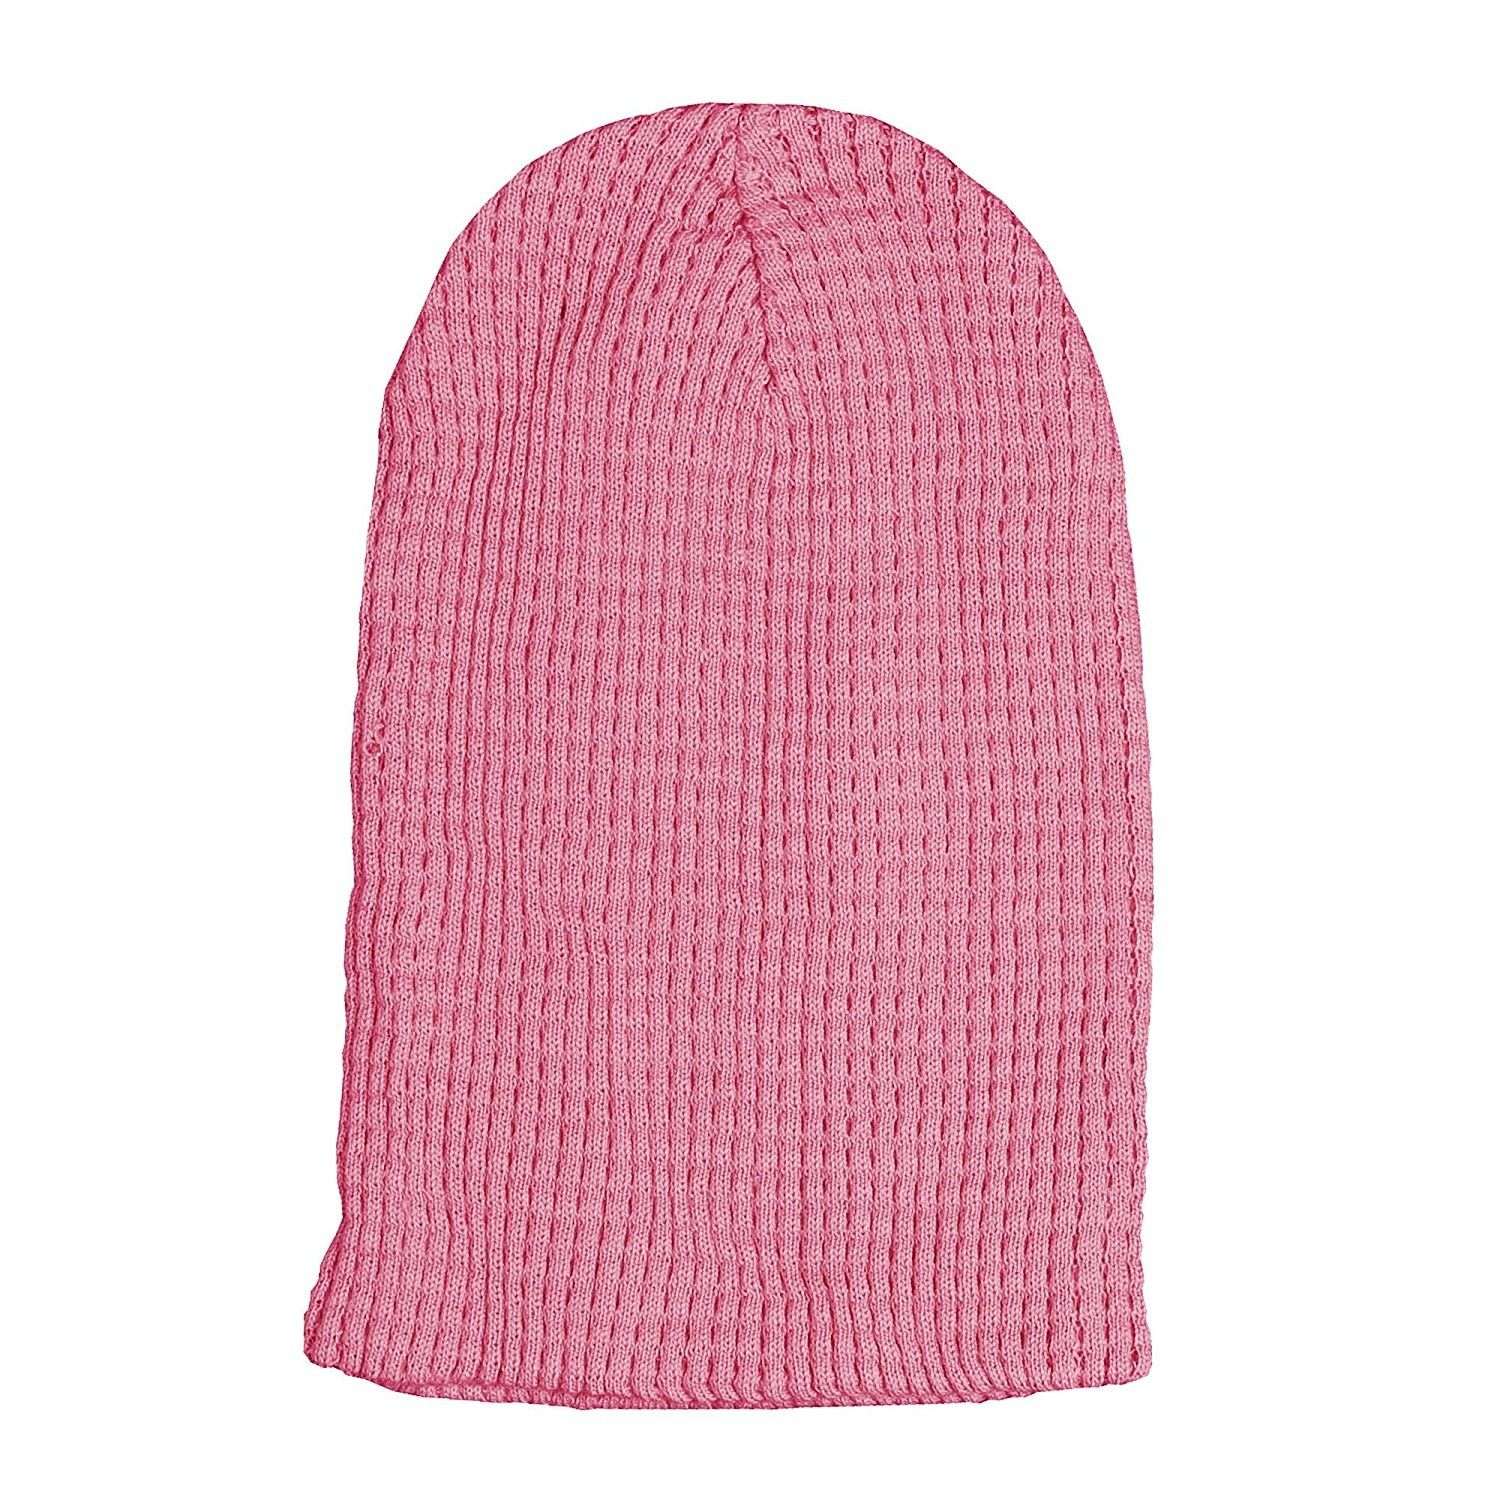 ef873cf47a6 Cotton Embossed Knit Slouchy Beanie Winter Warm Ski Skater Hip-hop Hat -  Pink -